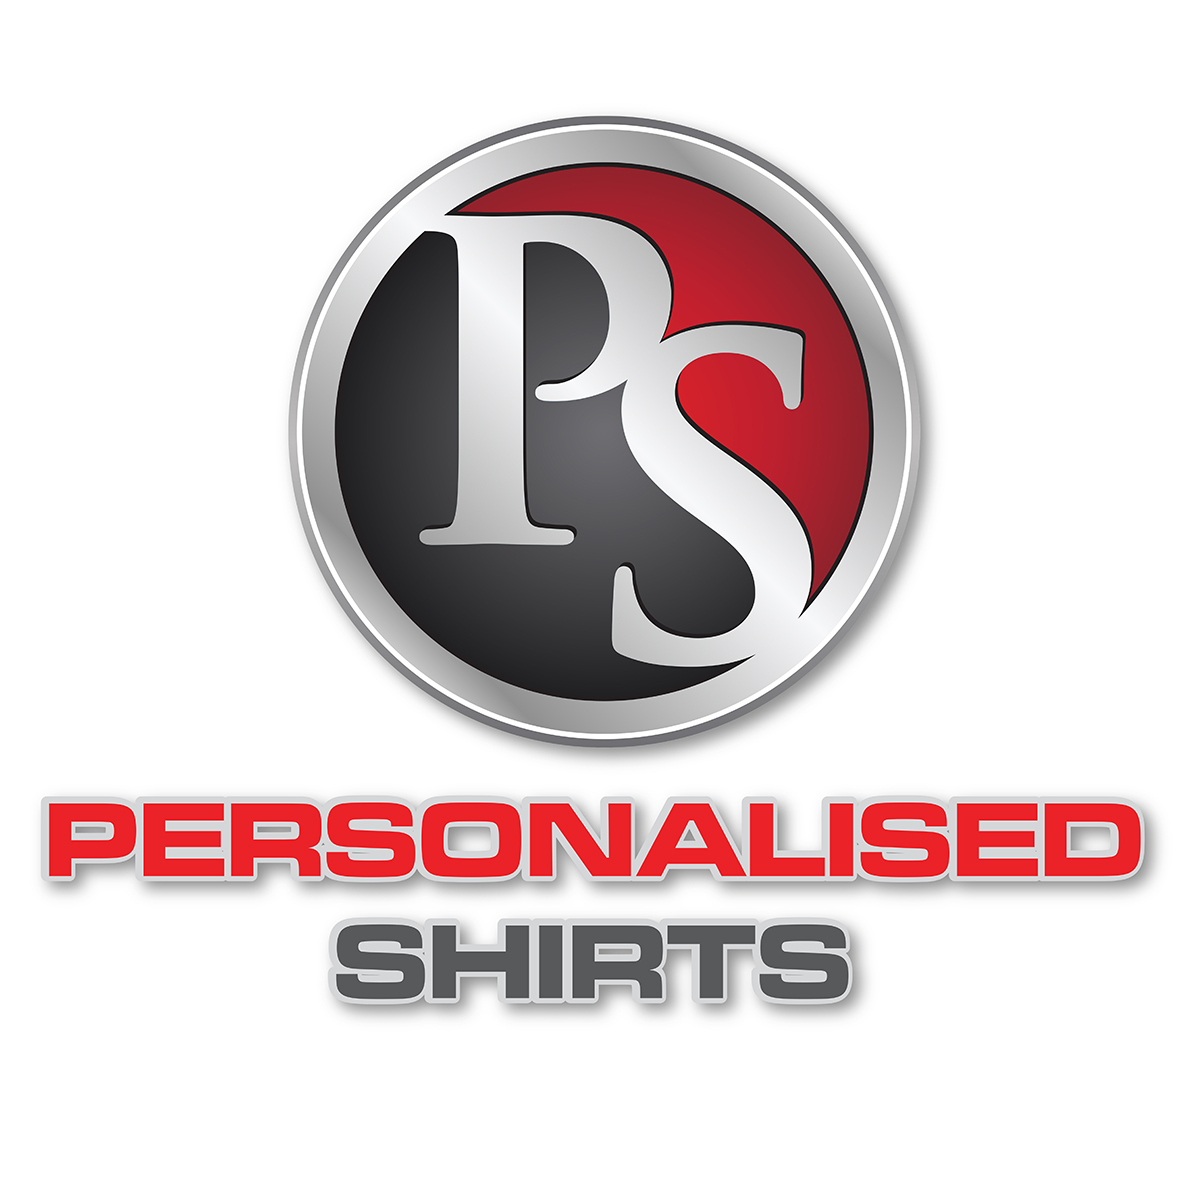 PERSONALISED SHIRTS